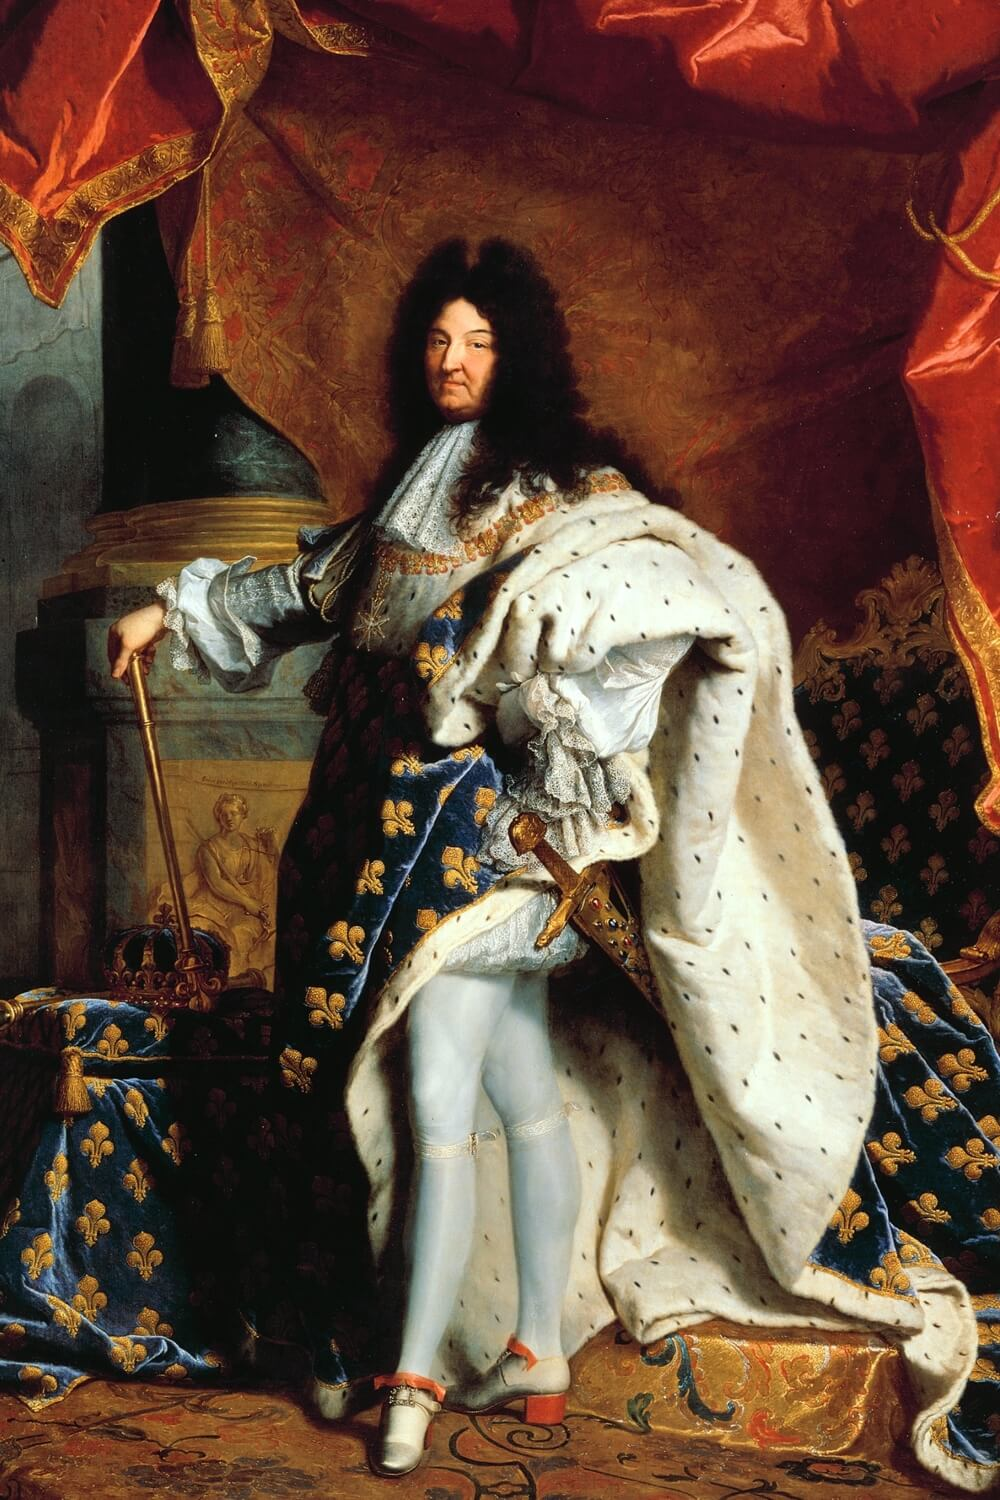 King Louis XIV at age 68 by Hyacinthe Rigaud (1701)